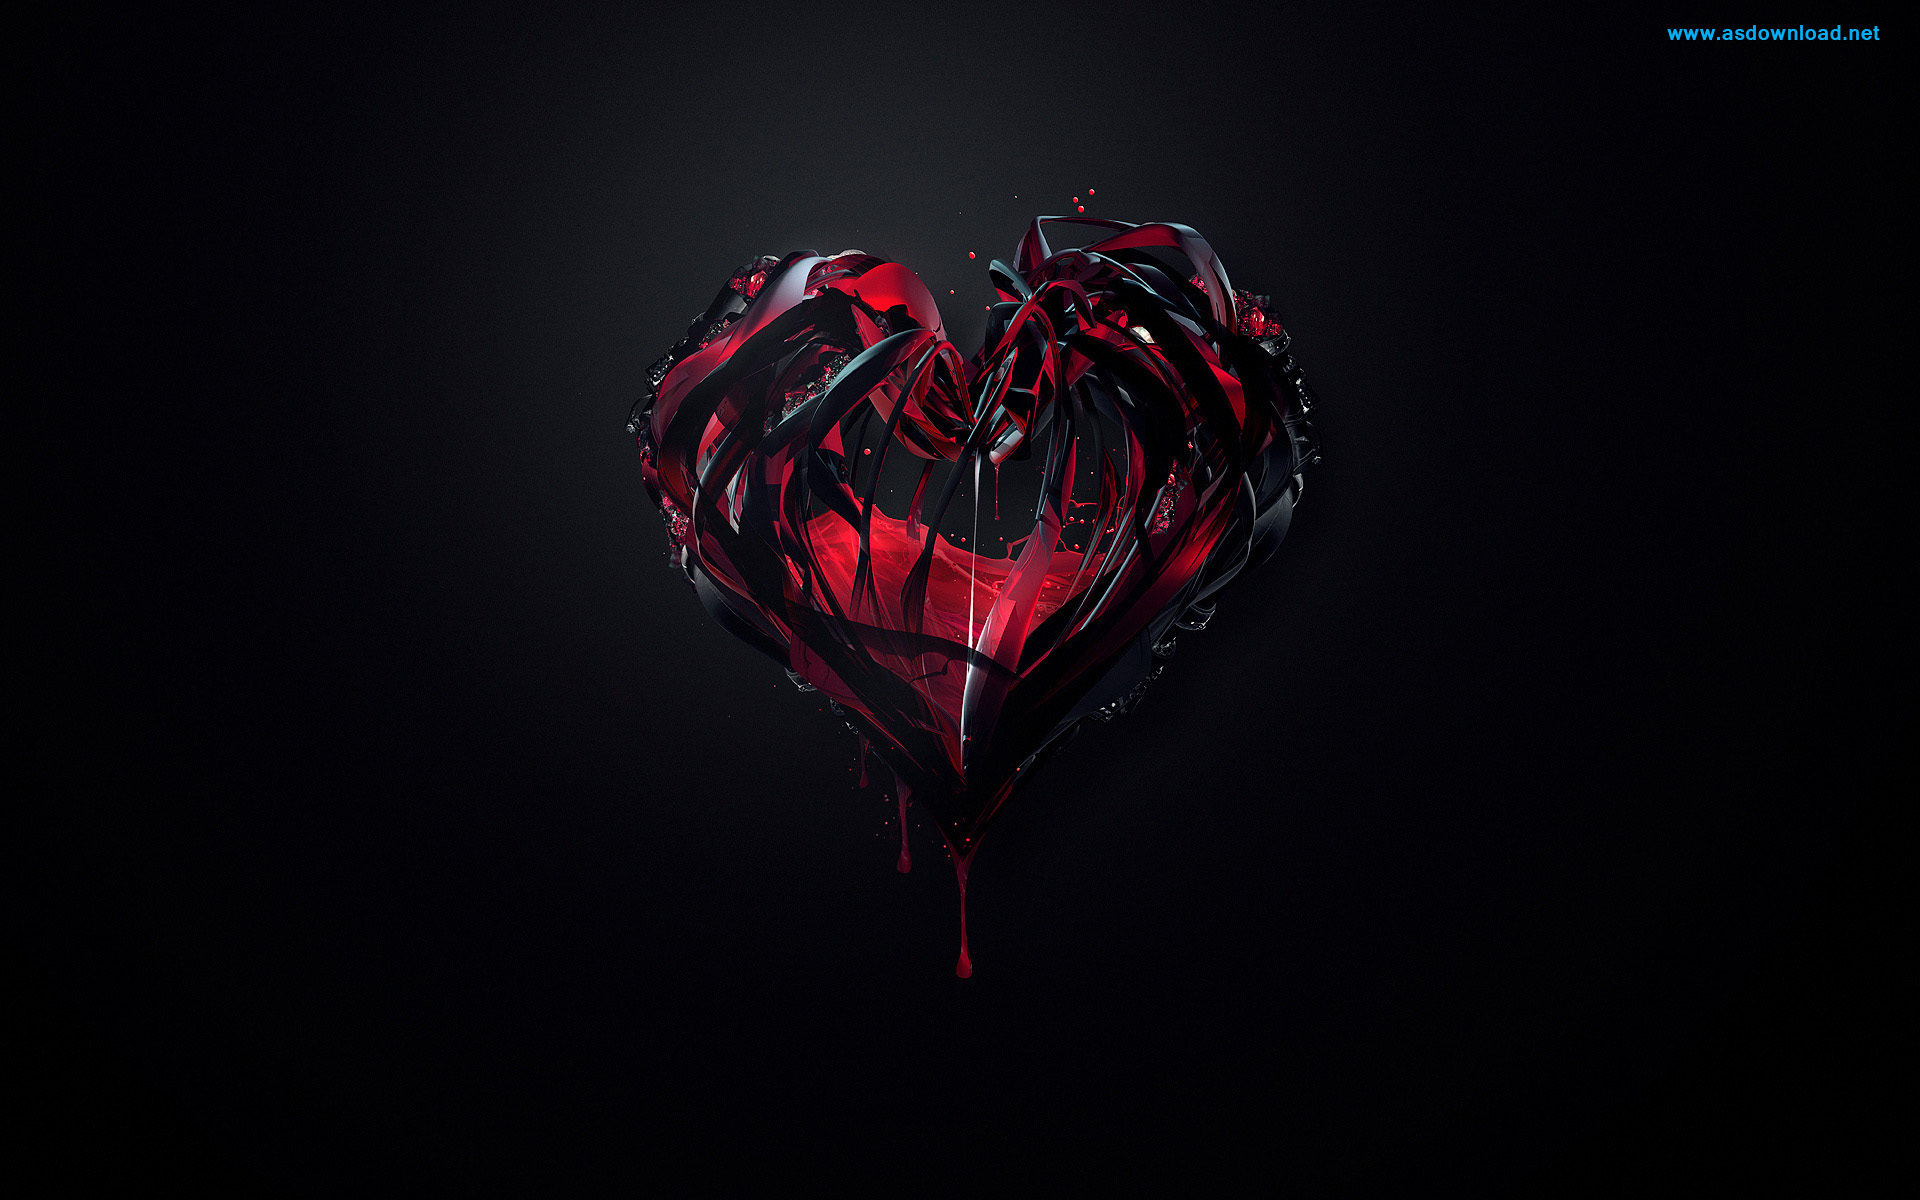 3D-Black-And-Red-Heart-Wallpaper